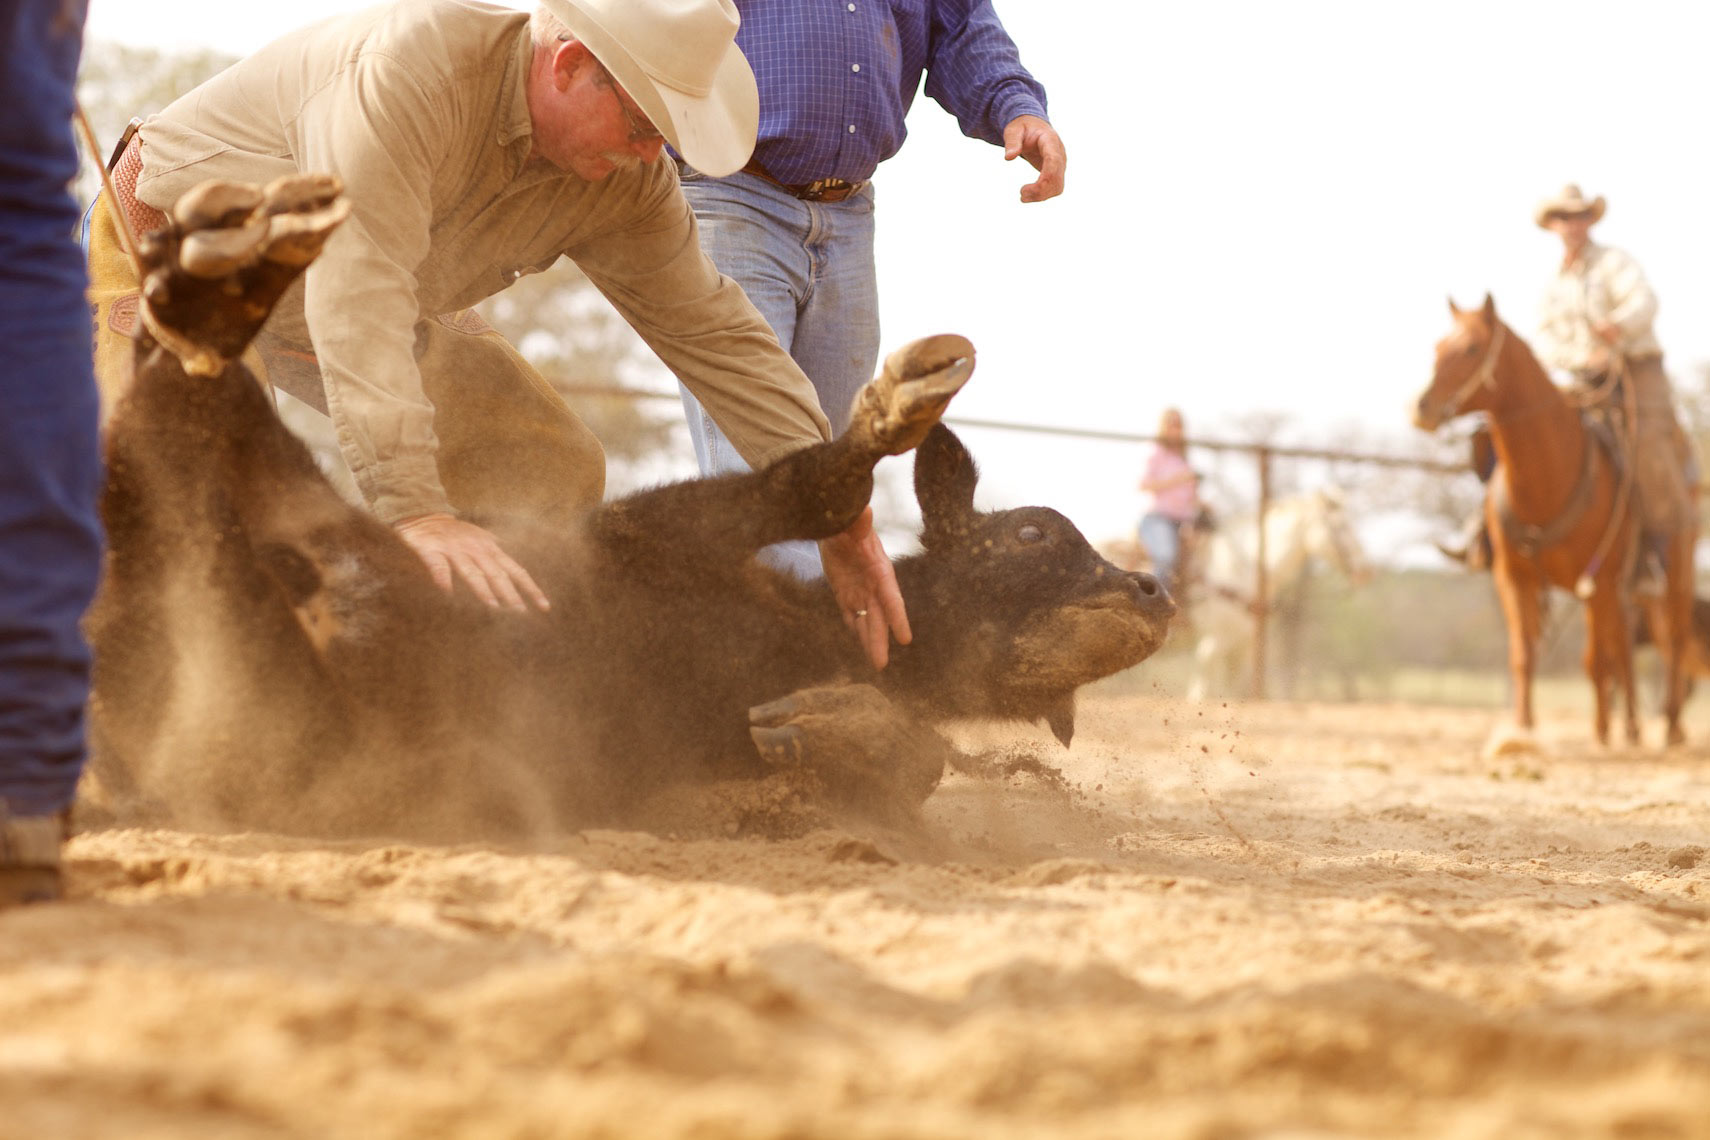 peeler-ranch-cattle-texas-jason-risner-photography-6495